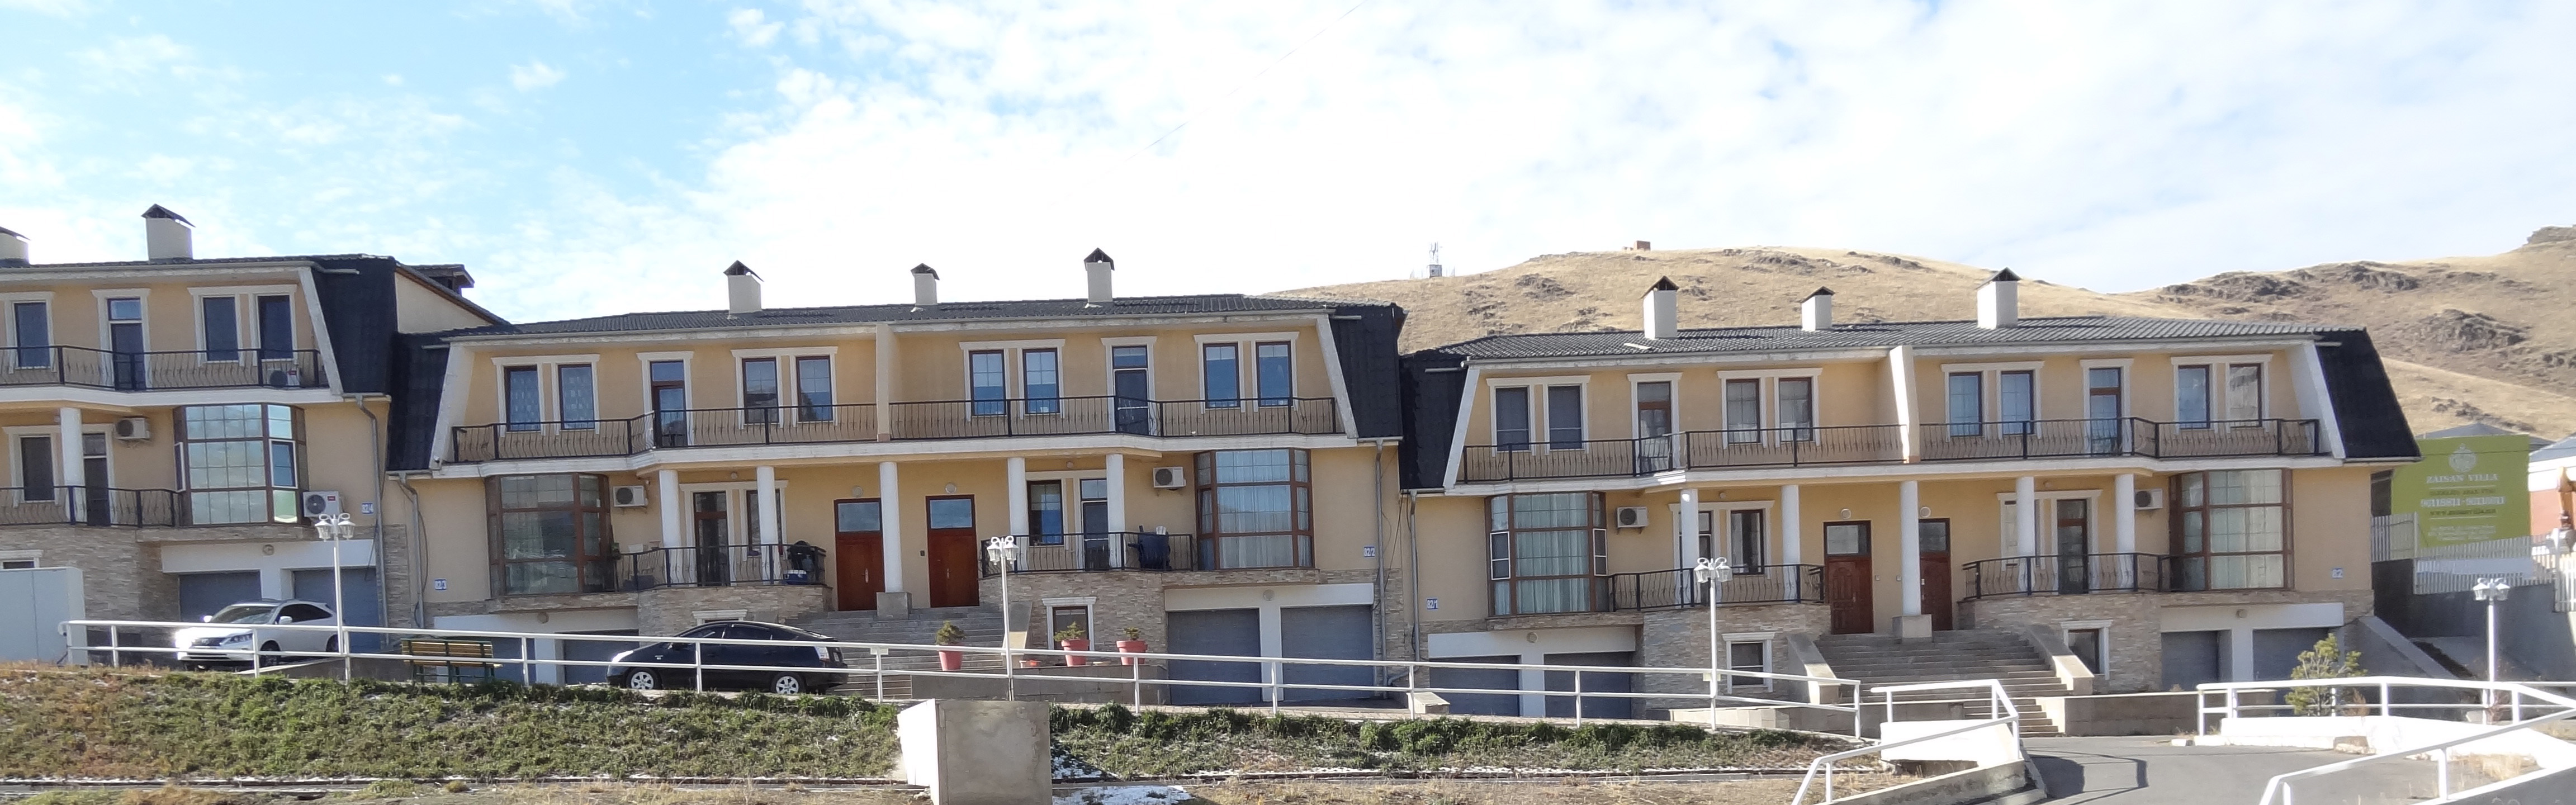 3-level 6-bedroom townhouse  in Anoma Complex